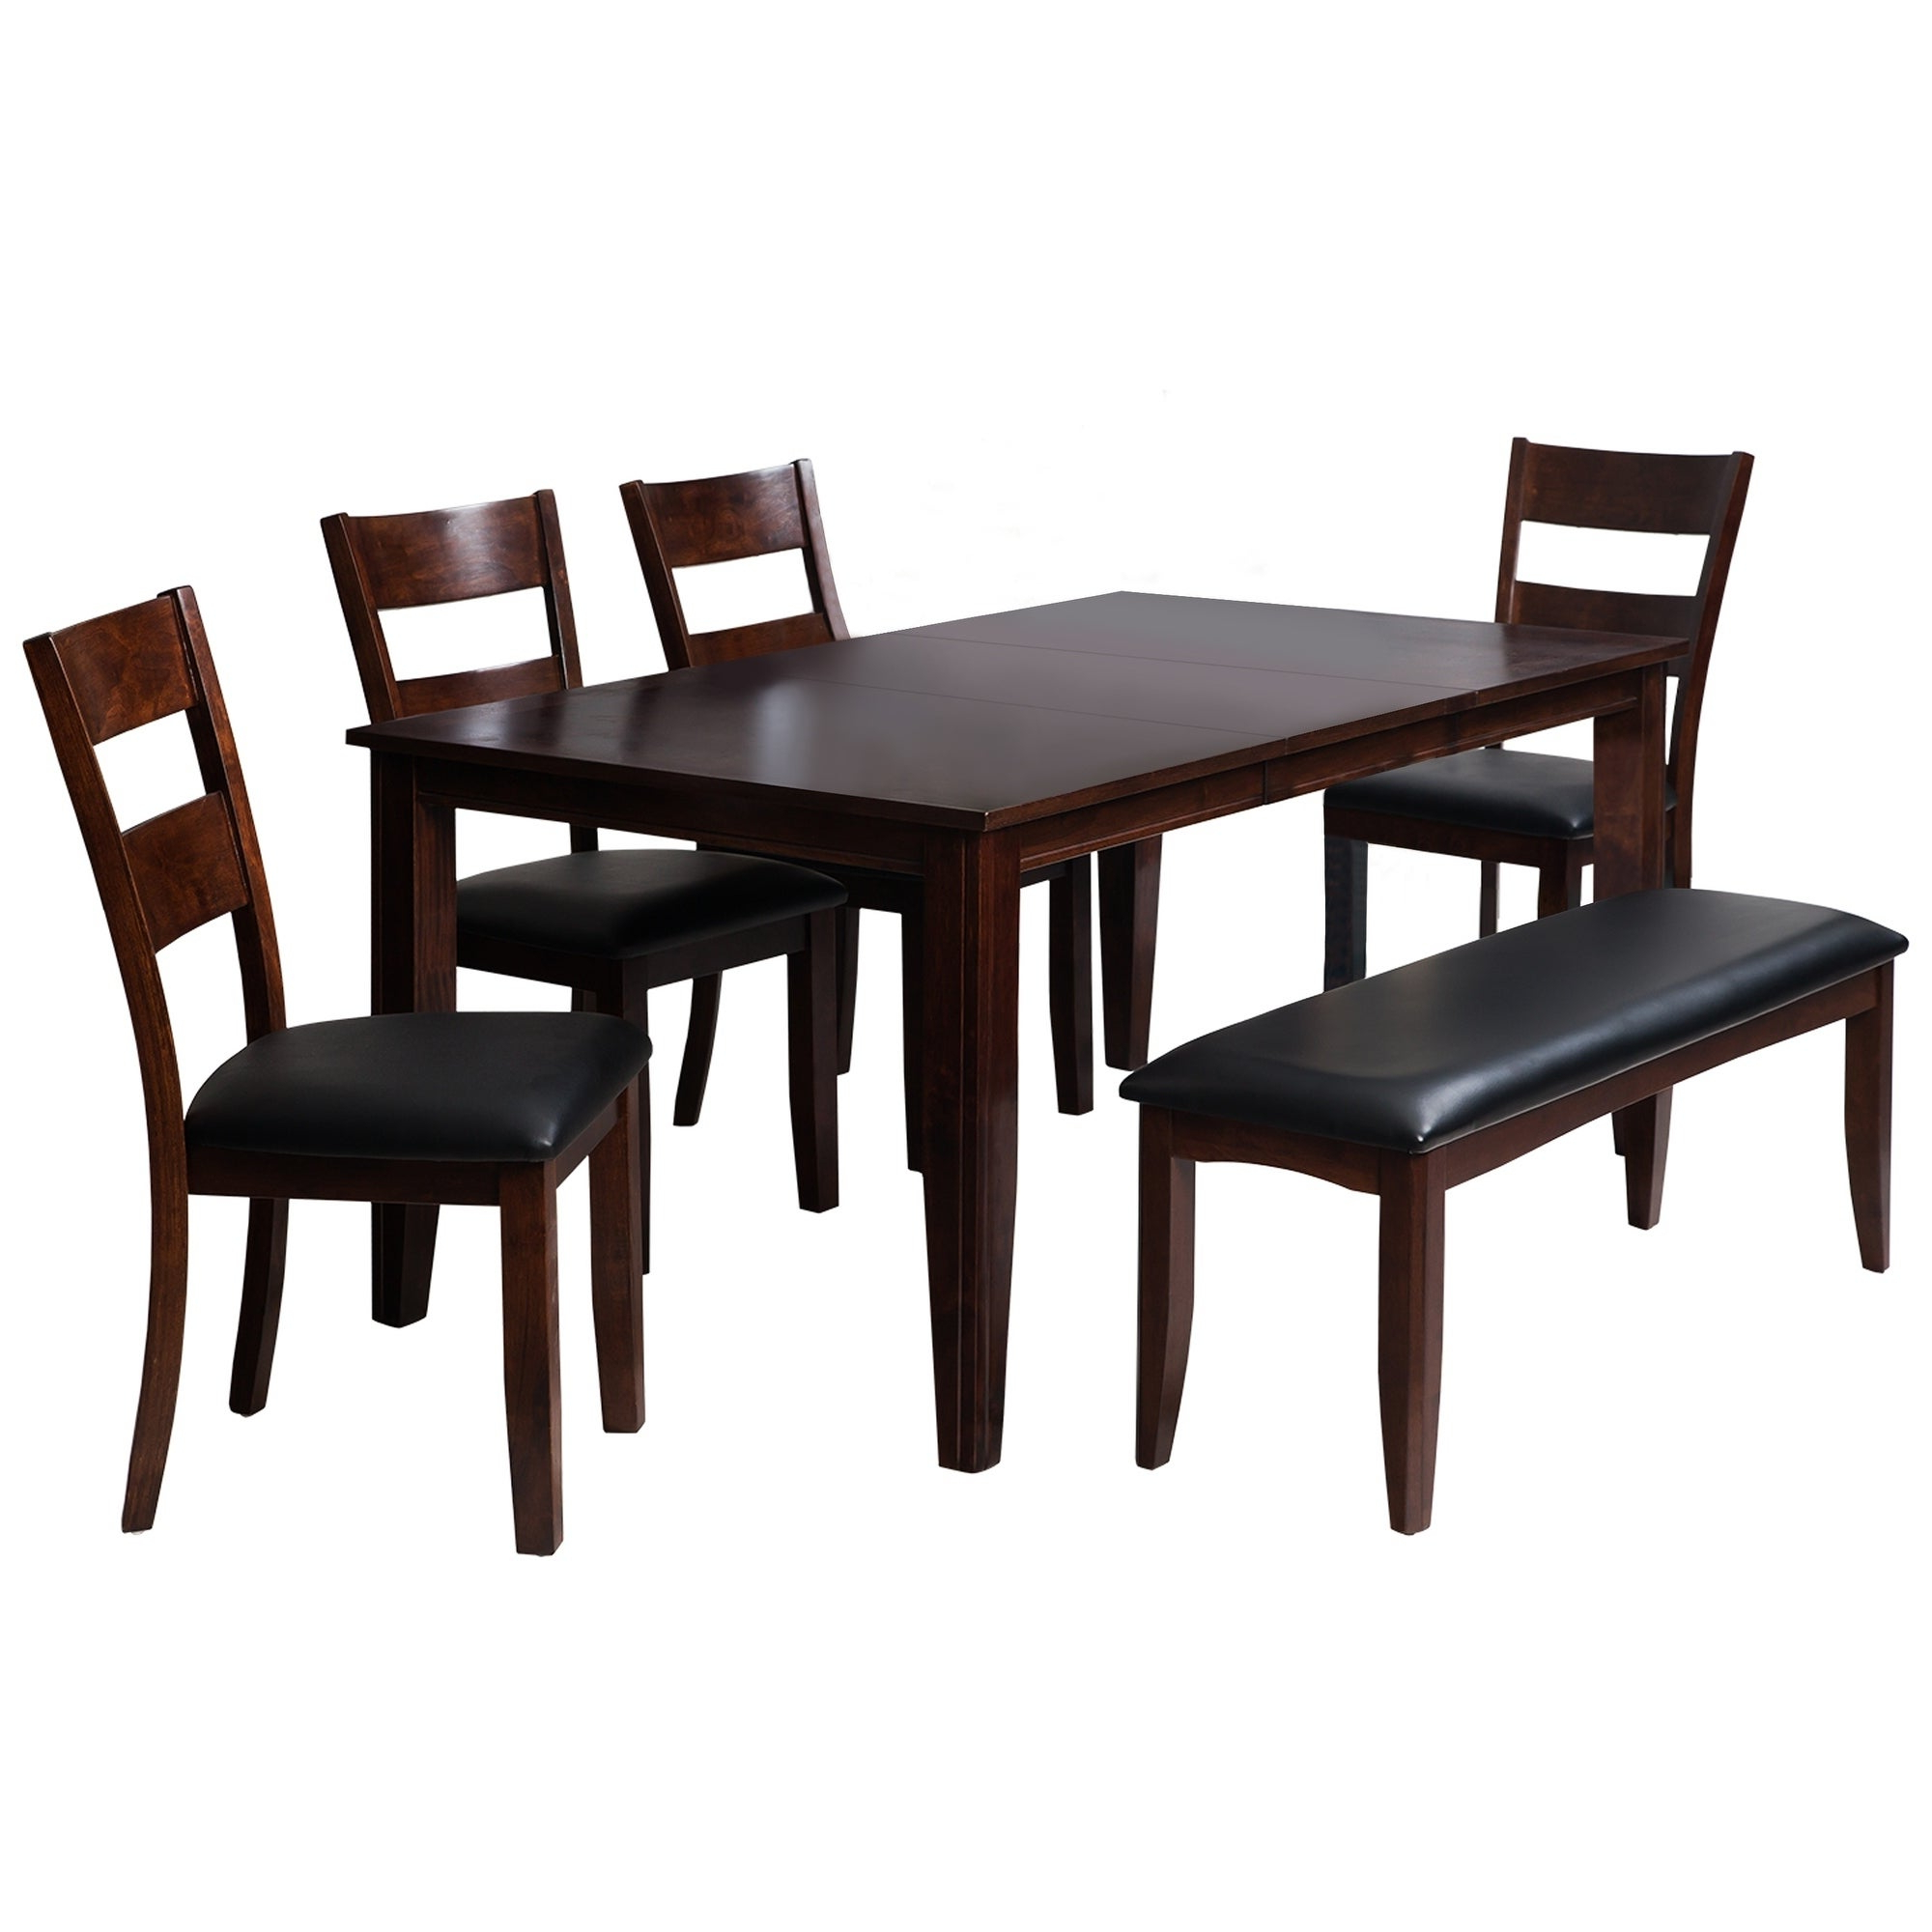 "Shop 6 Piece Solid Wood Dining Set ""aden"", Modern Kitchen Table Set Pertaining To Fashionable Adan 5 Piece Solid Wood Dining Sets (Set Of 5) (View 9 of 25)"